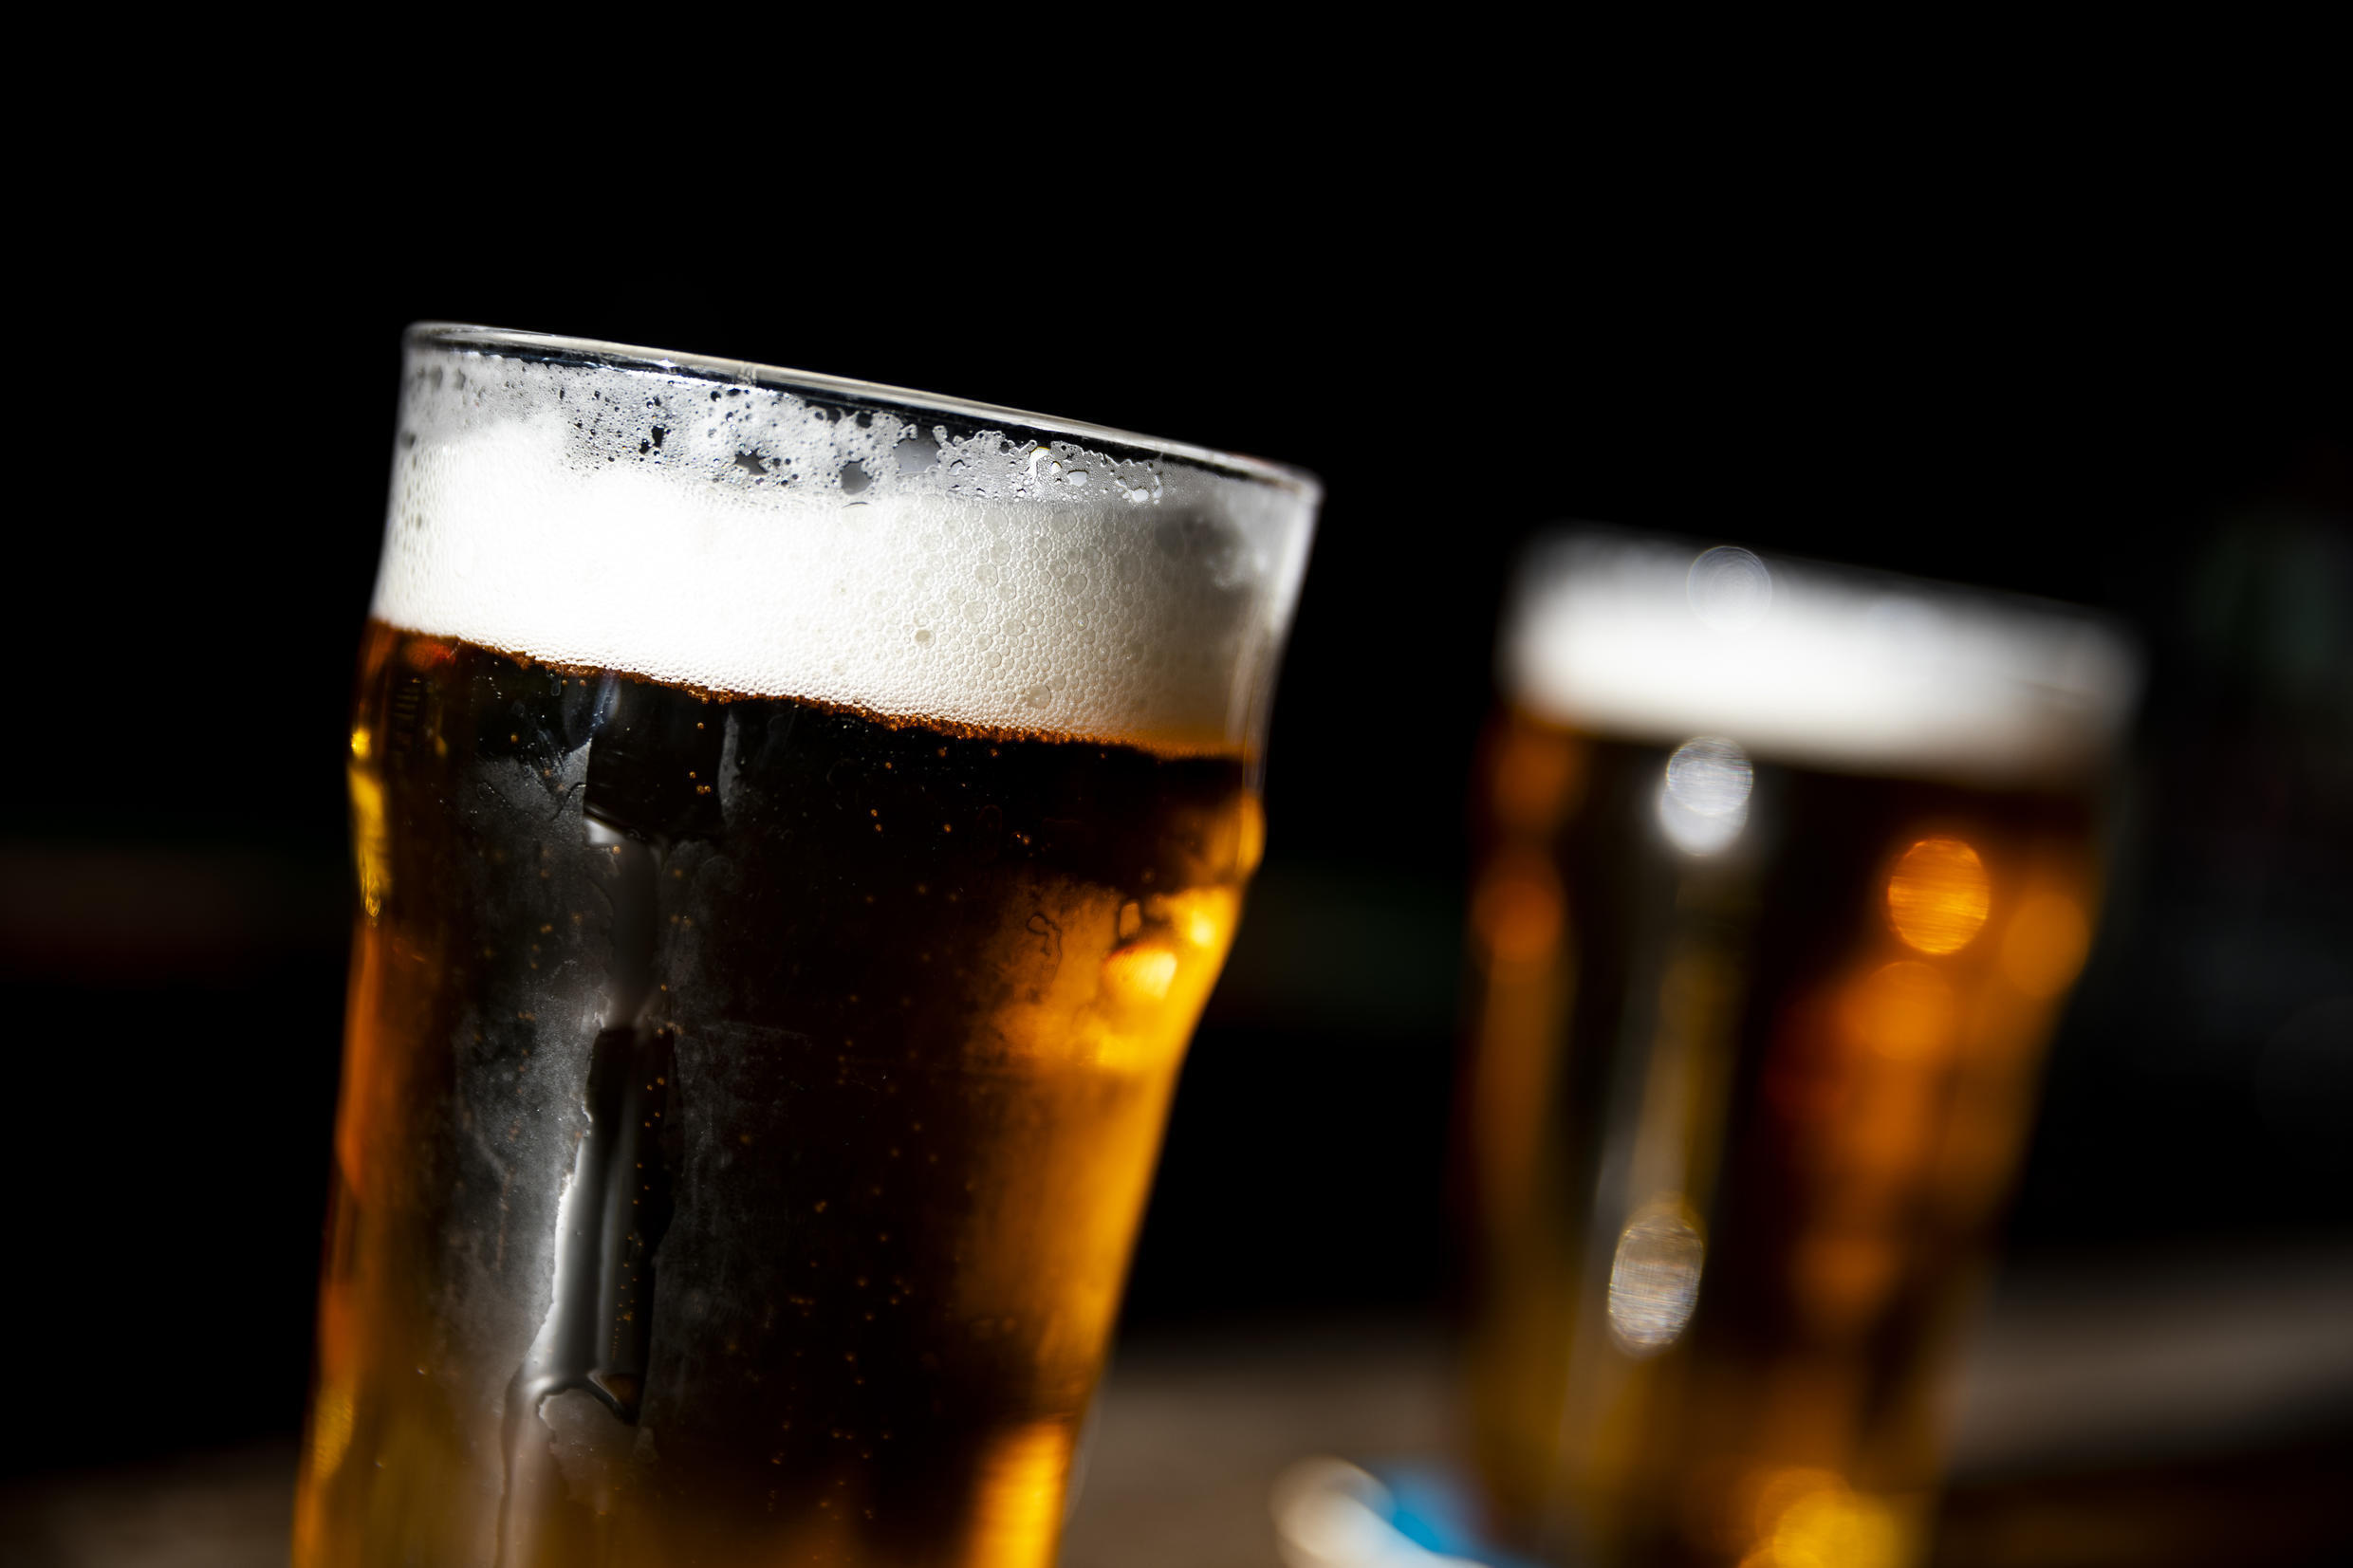 Beer drinkers in some countries may have trouble getting their favourite liquid